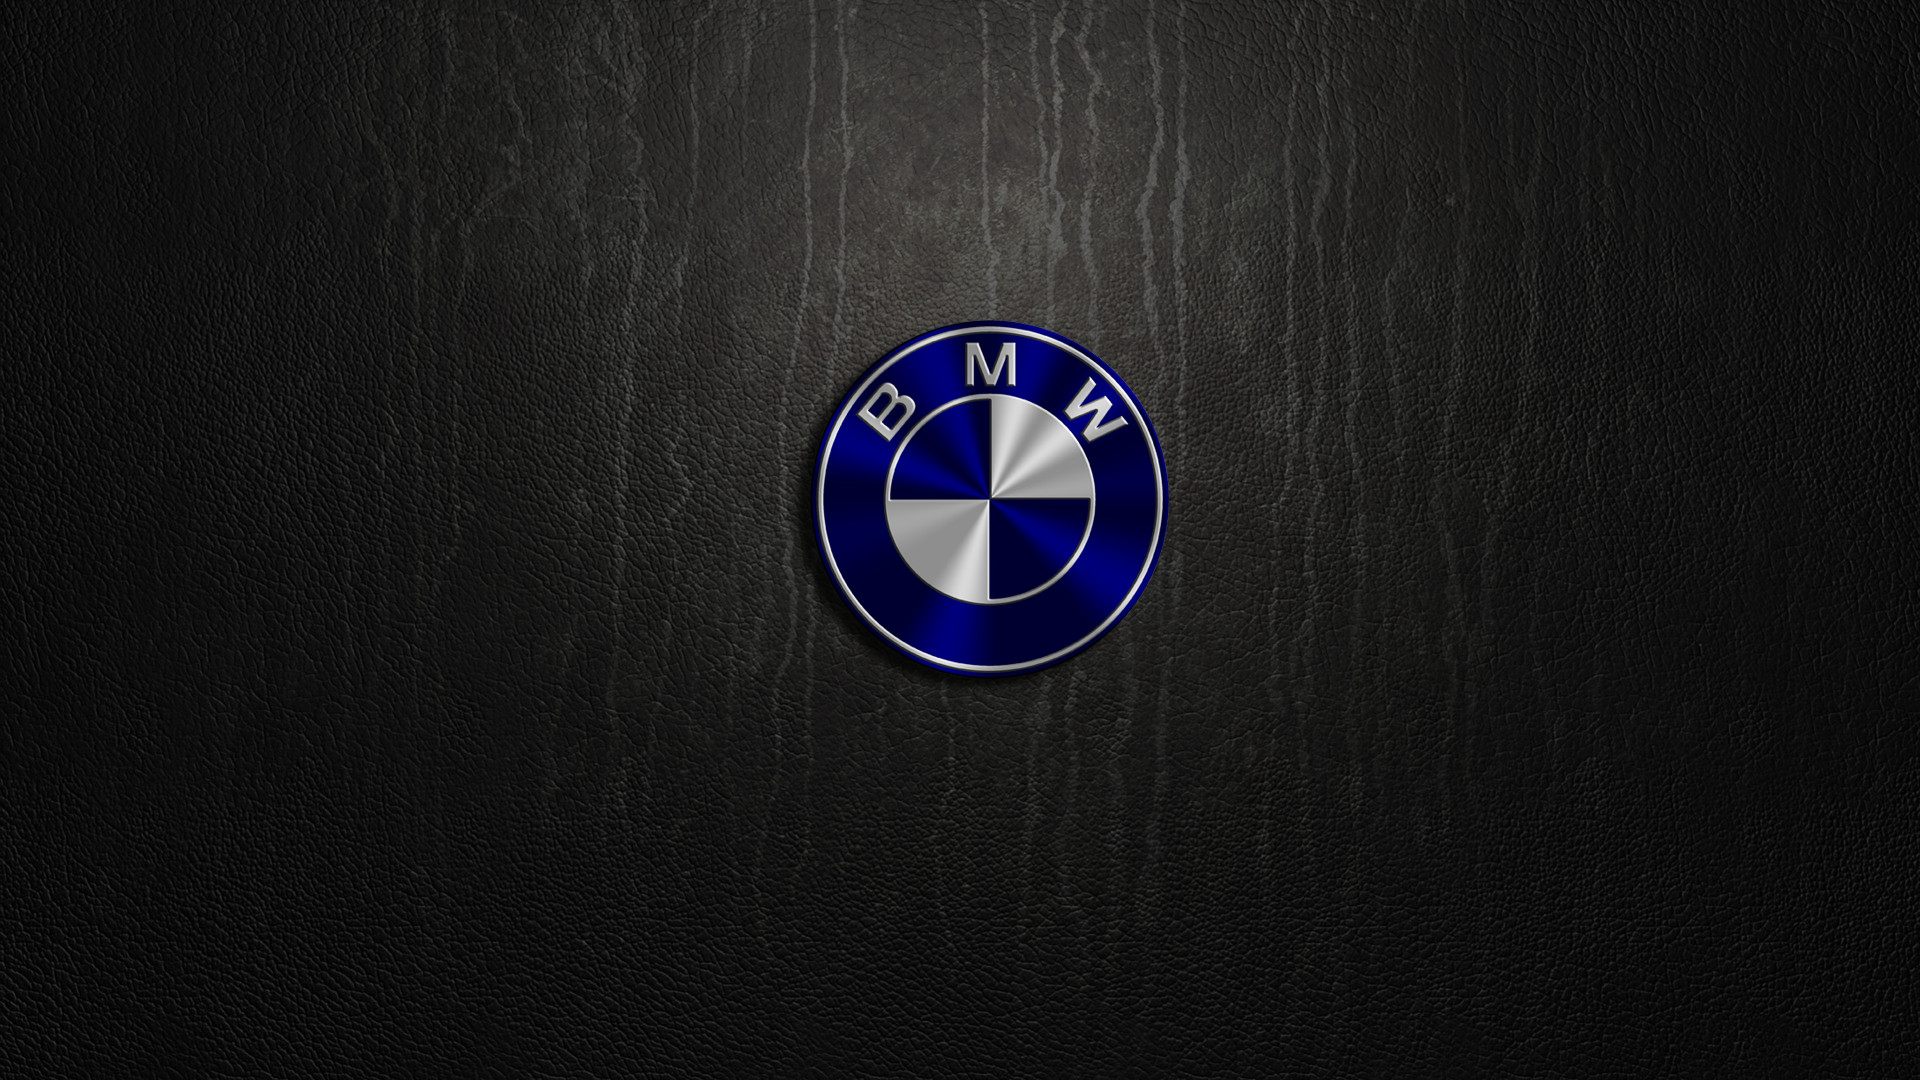 Bmw Logo Wallpaper Posted By Samantha Mercado